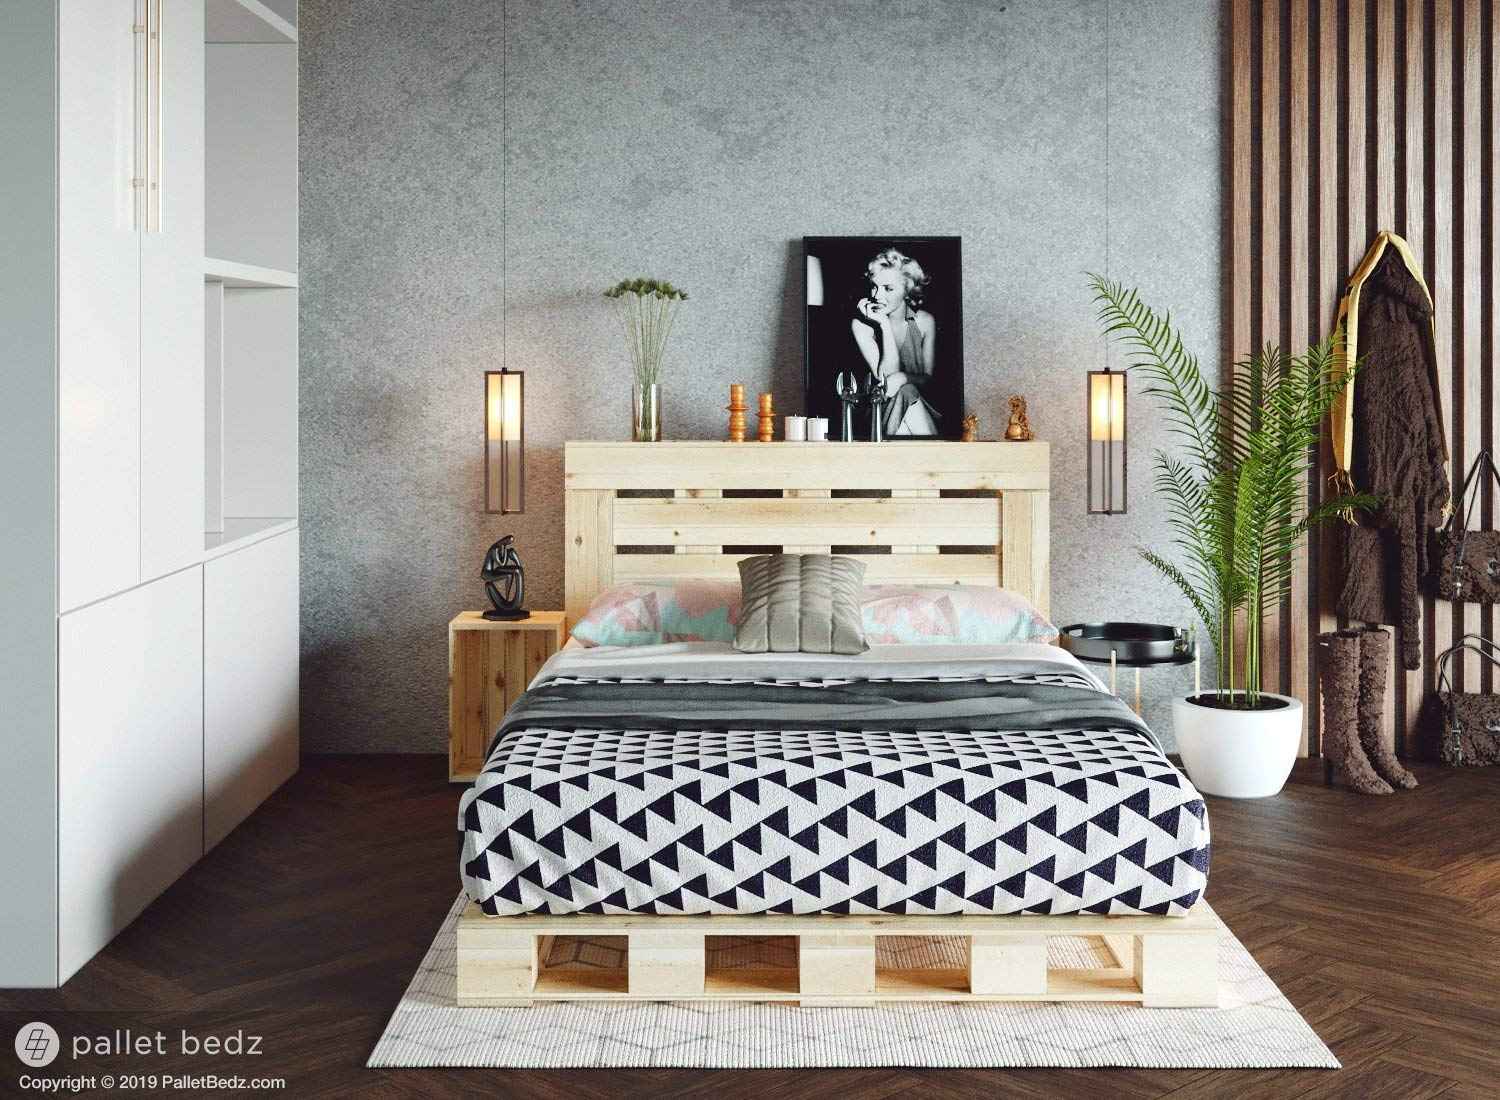 Amazon.com: Full Size Pallet Bed for The Modern and Natural ...